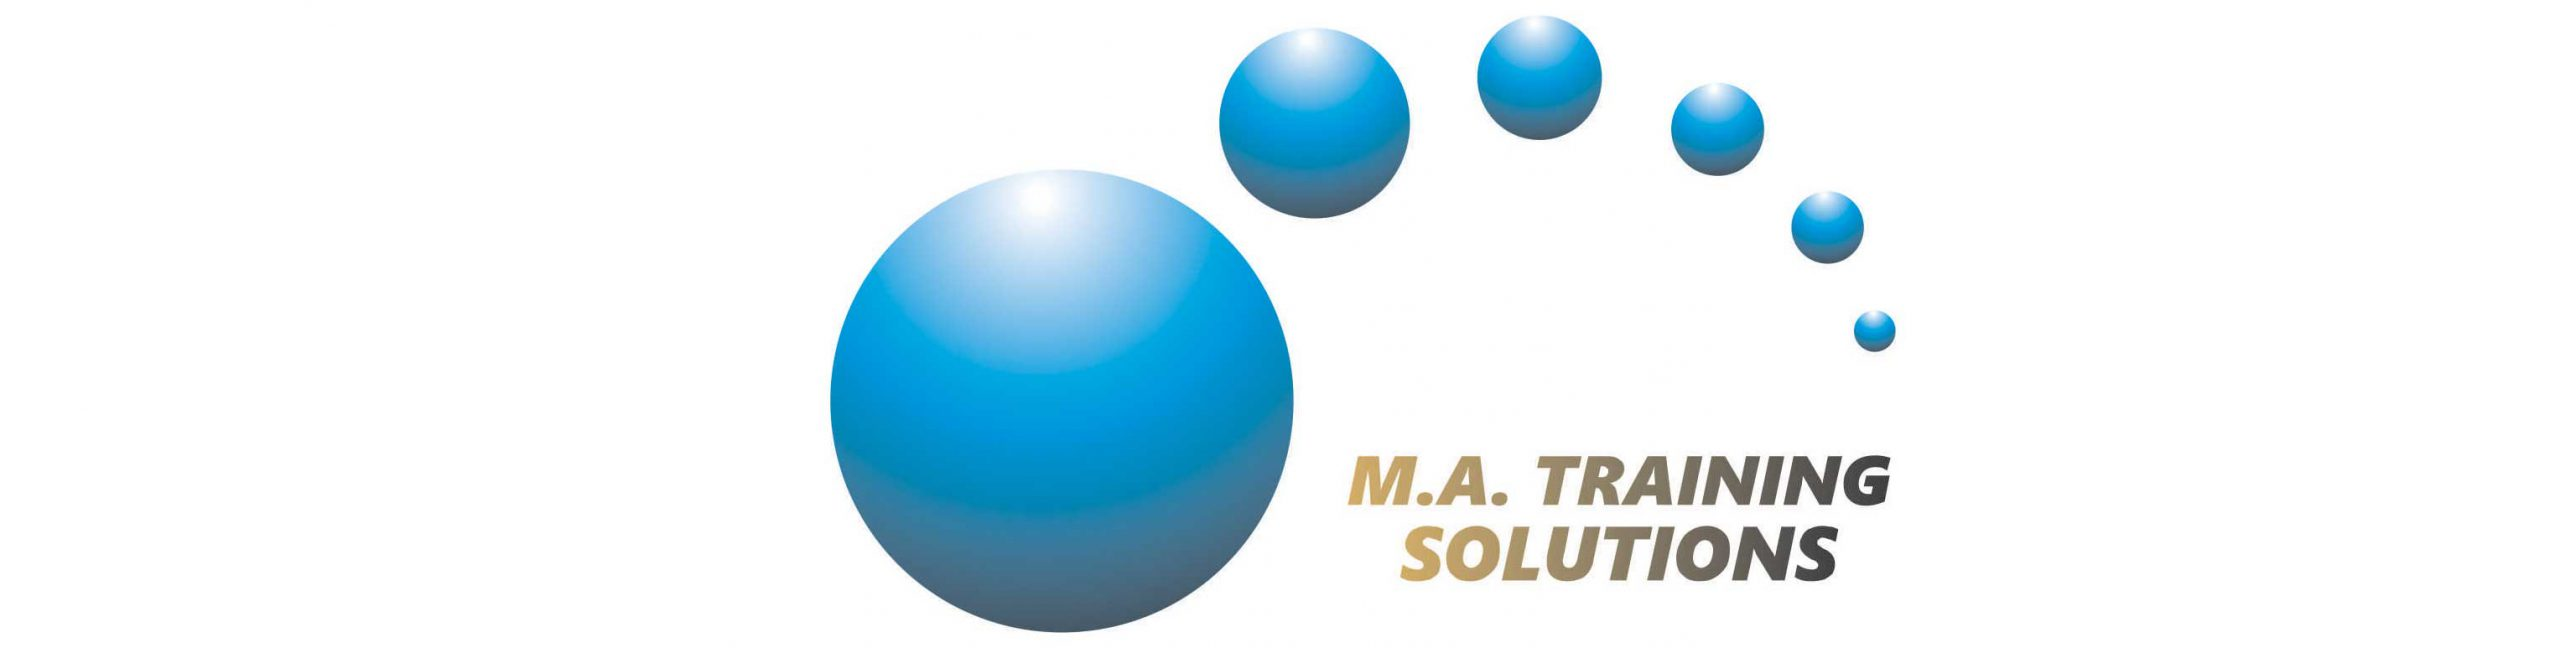 M. A. TRAINING SOLUTIONS